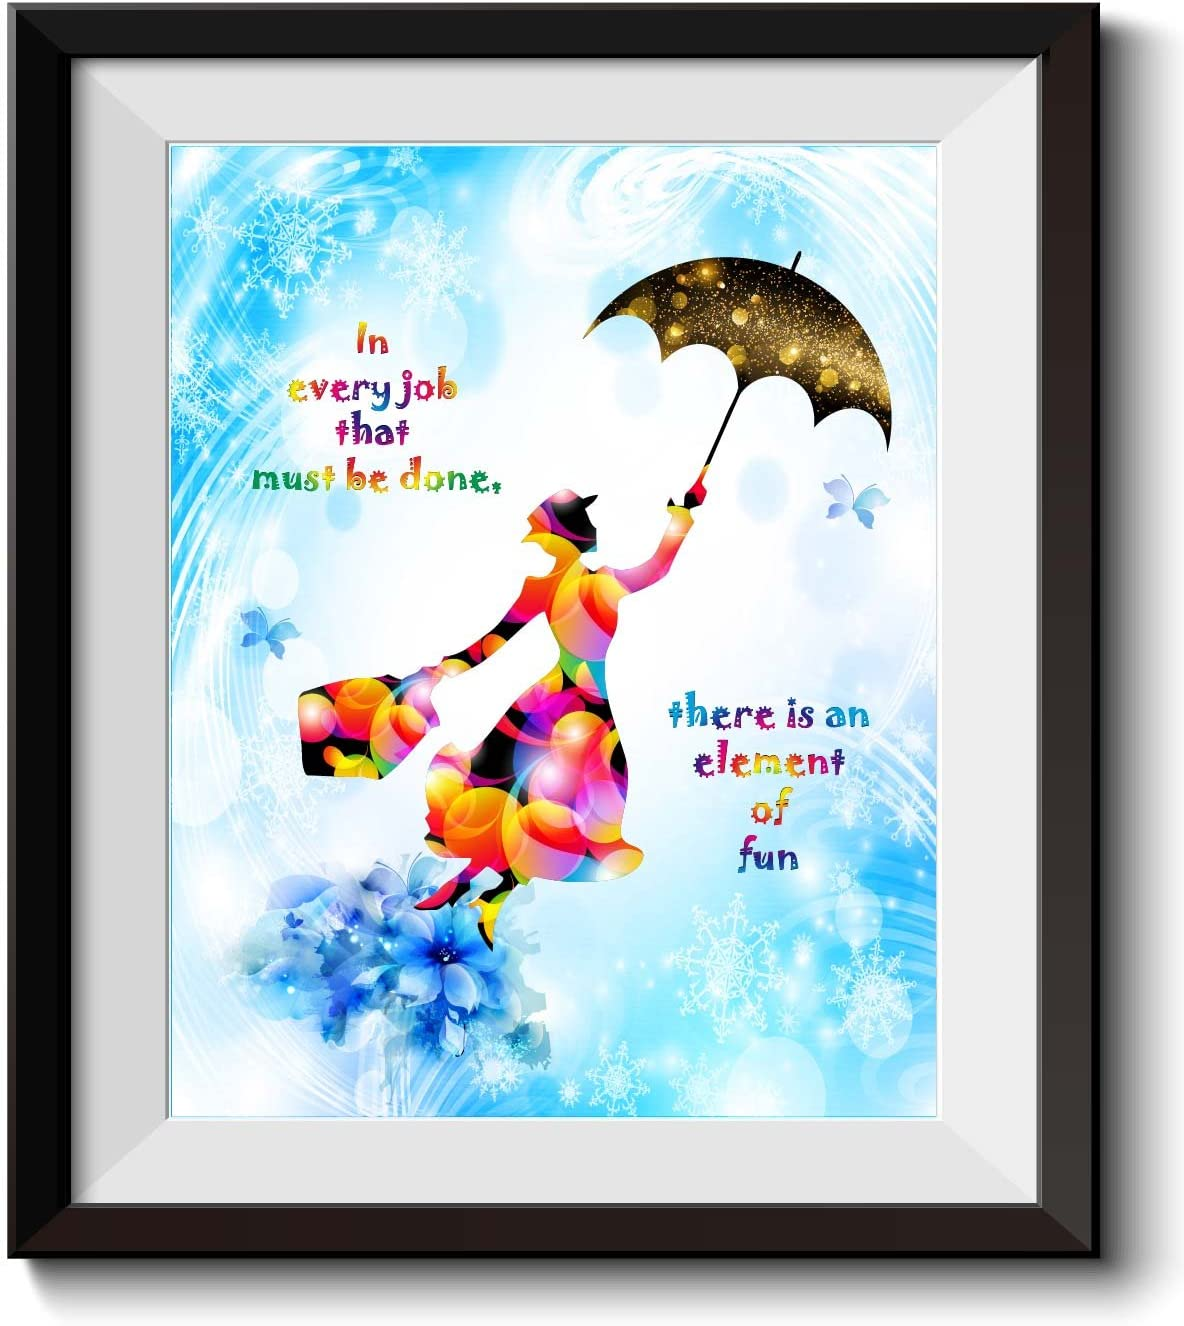 Uhomate Mary Poppins Quotes In Every Job That Must Be Done Quote Home Canvas Prints Wall Art Inspirational Quotes Wall Decor Living Room Bedroom Artwork C028 (8X10)